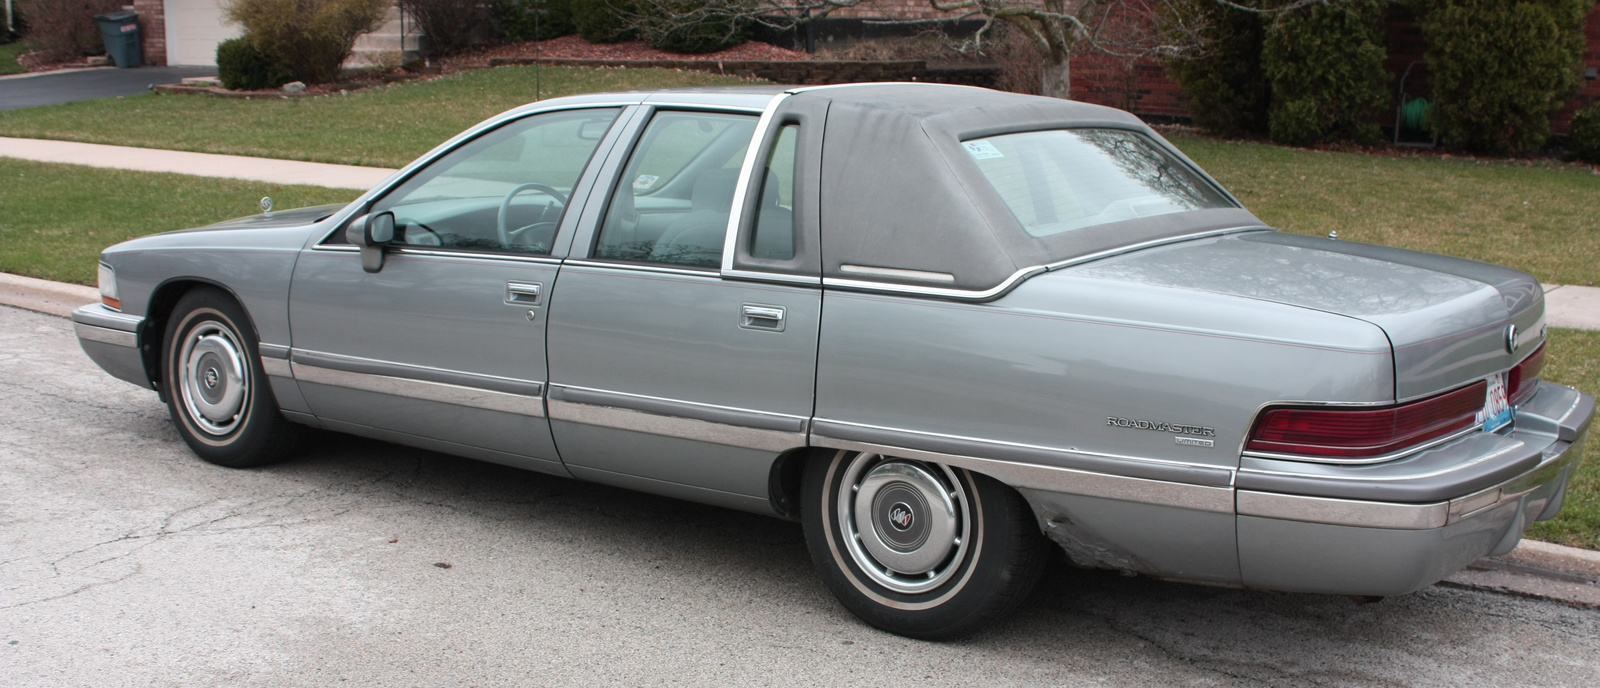 Picture of 1994 Buick Roadmaster 4 Dr Limited Sedan